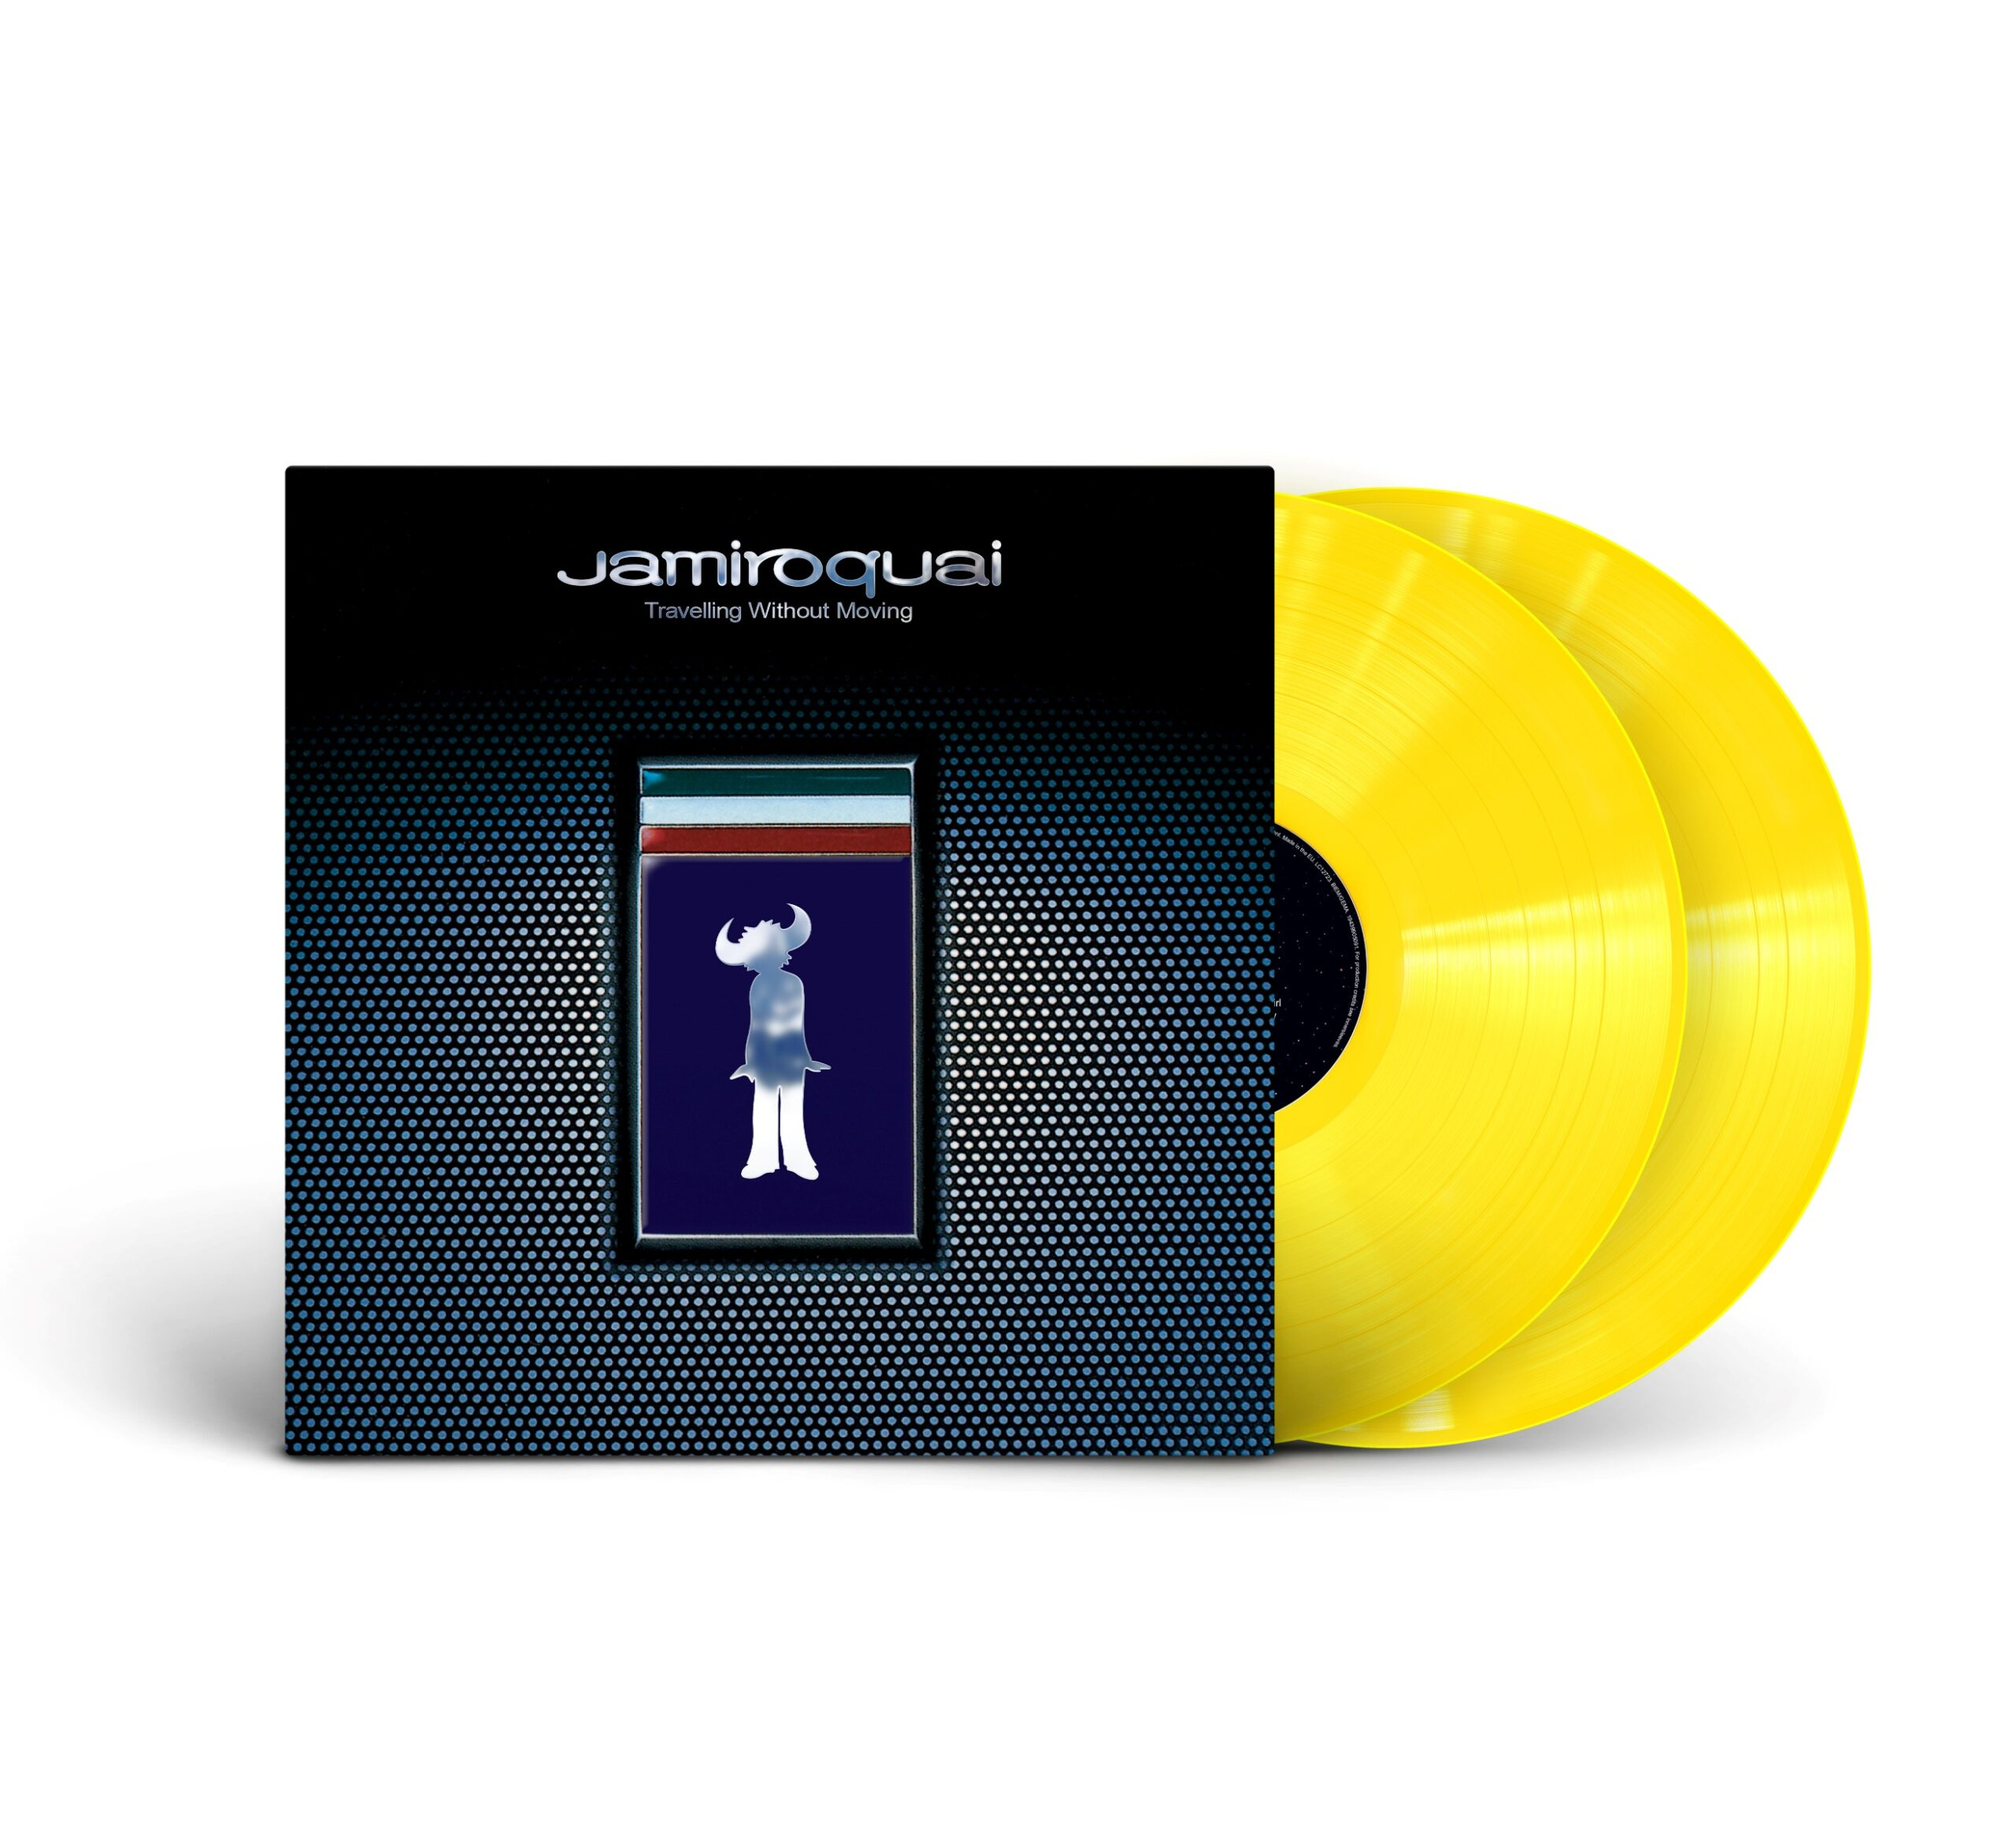 JAMIROQUAI - TRAVELLING WITHOUT MOVING 25TH ANNIVERSARY